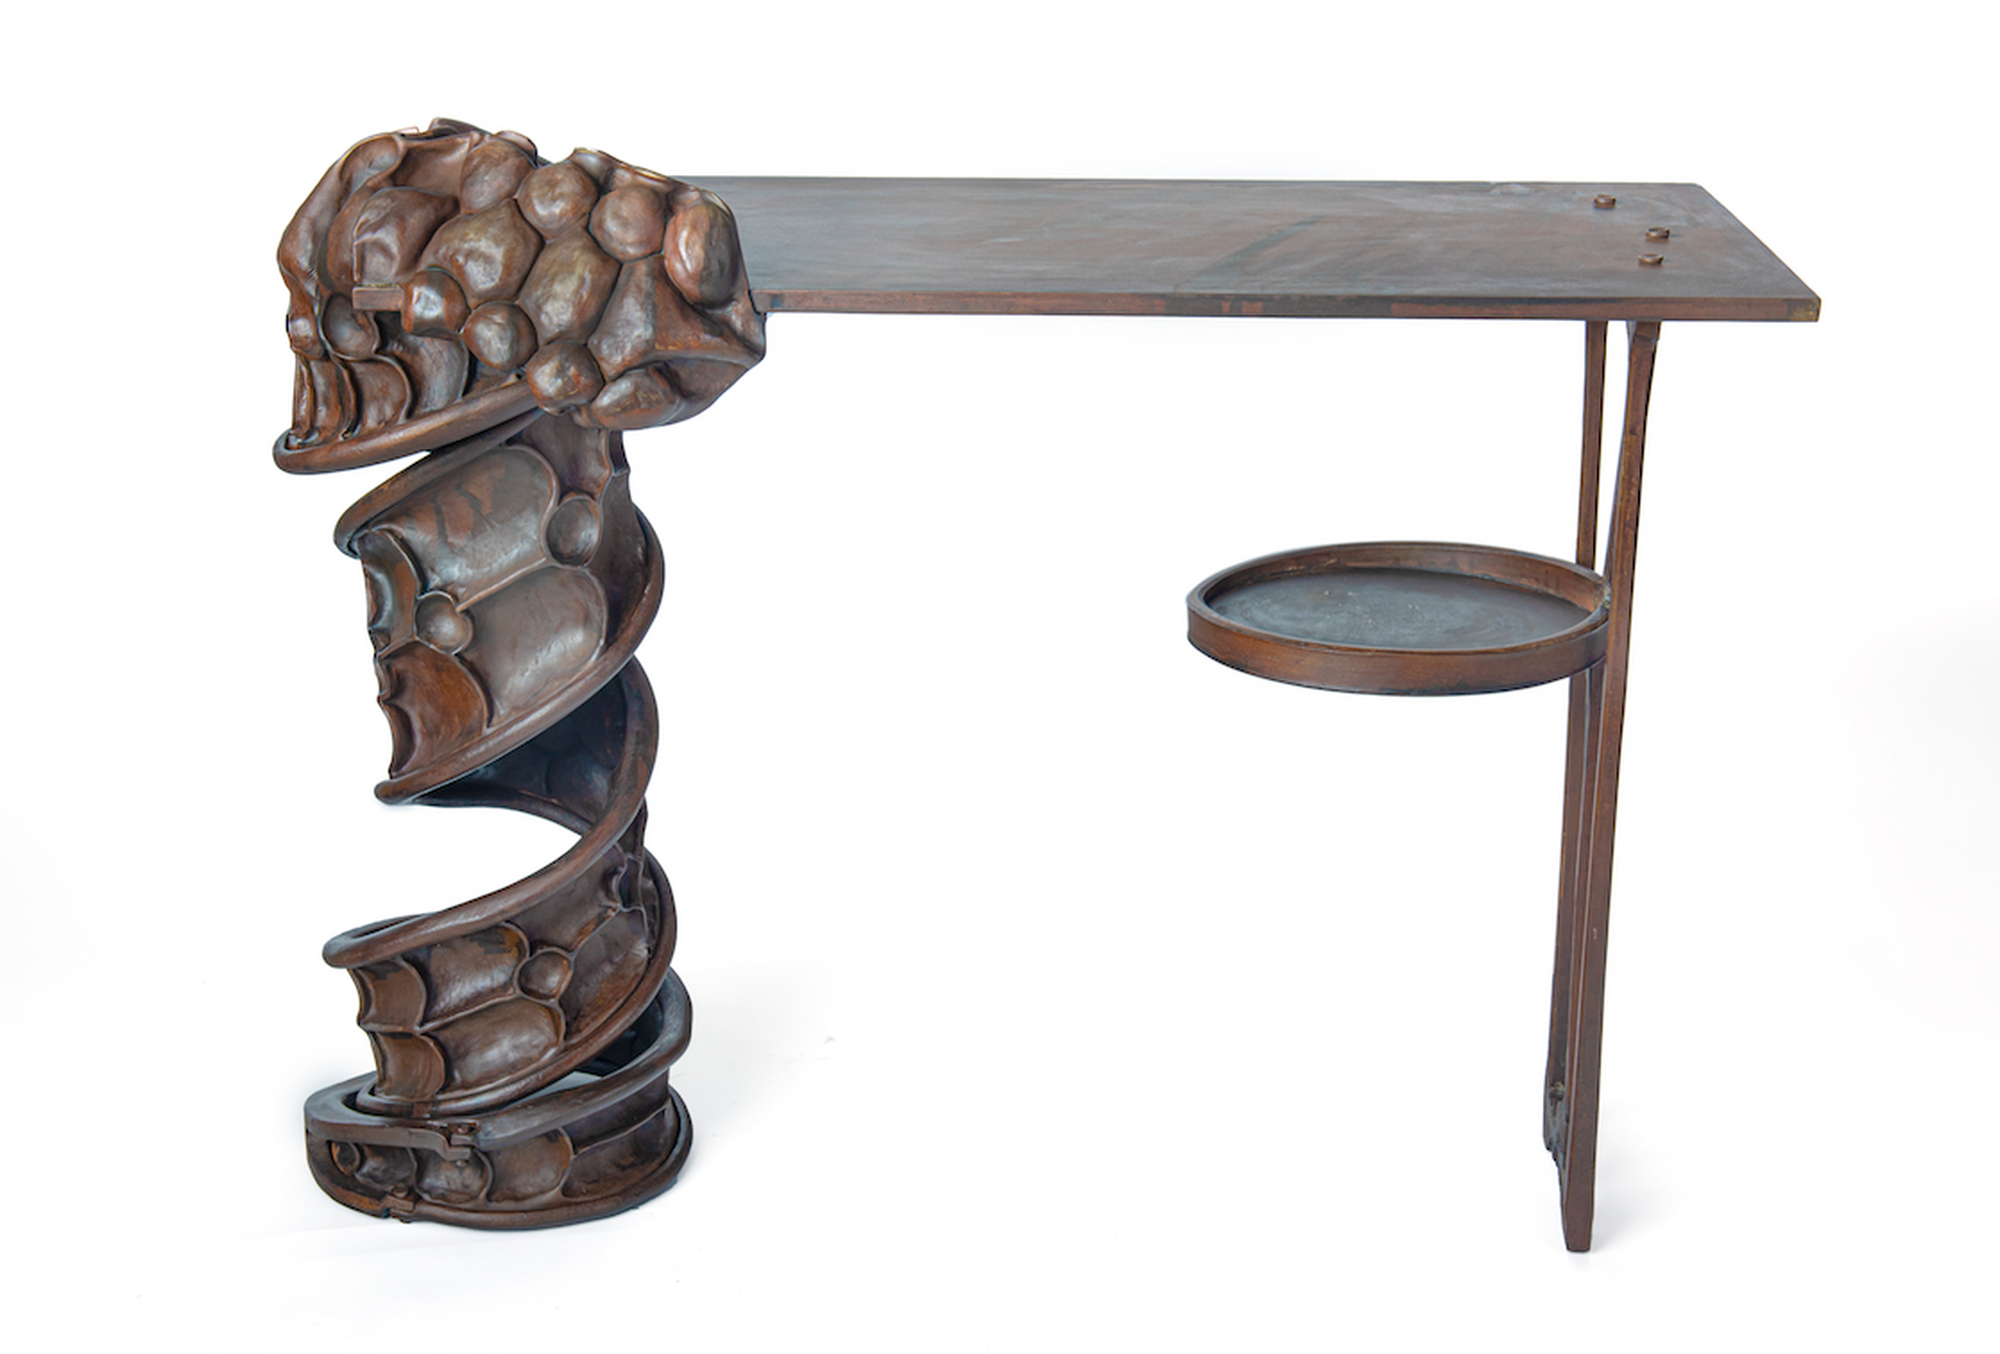 Helix Table